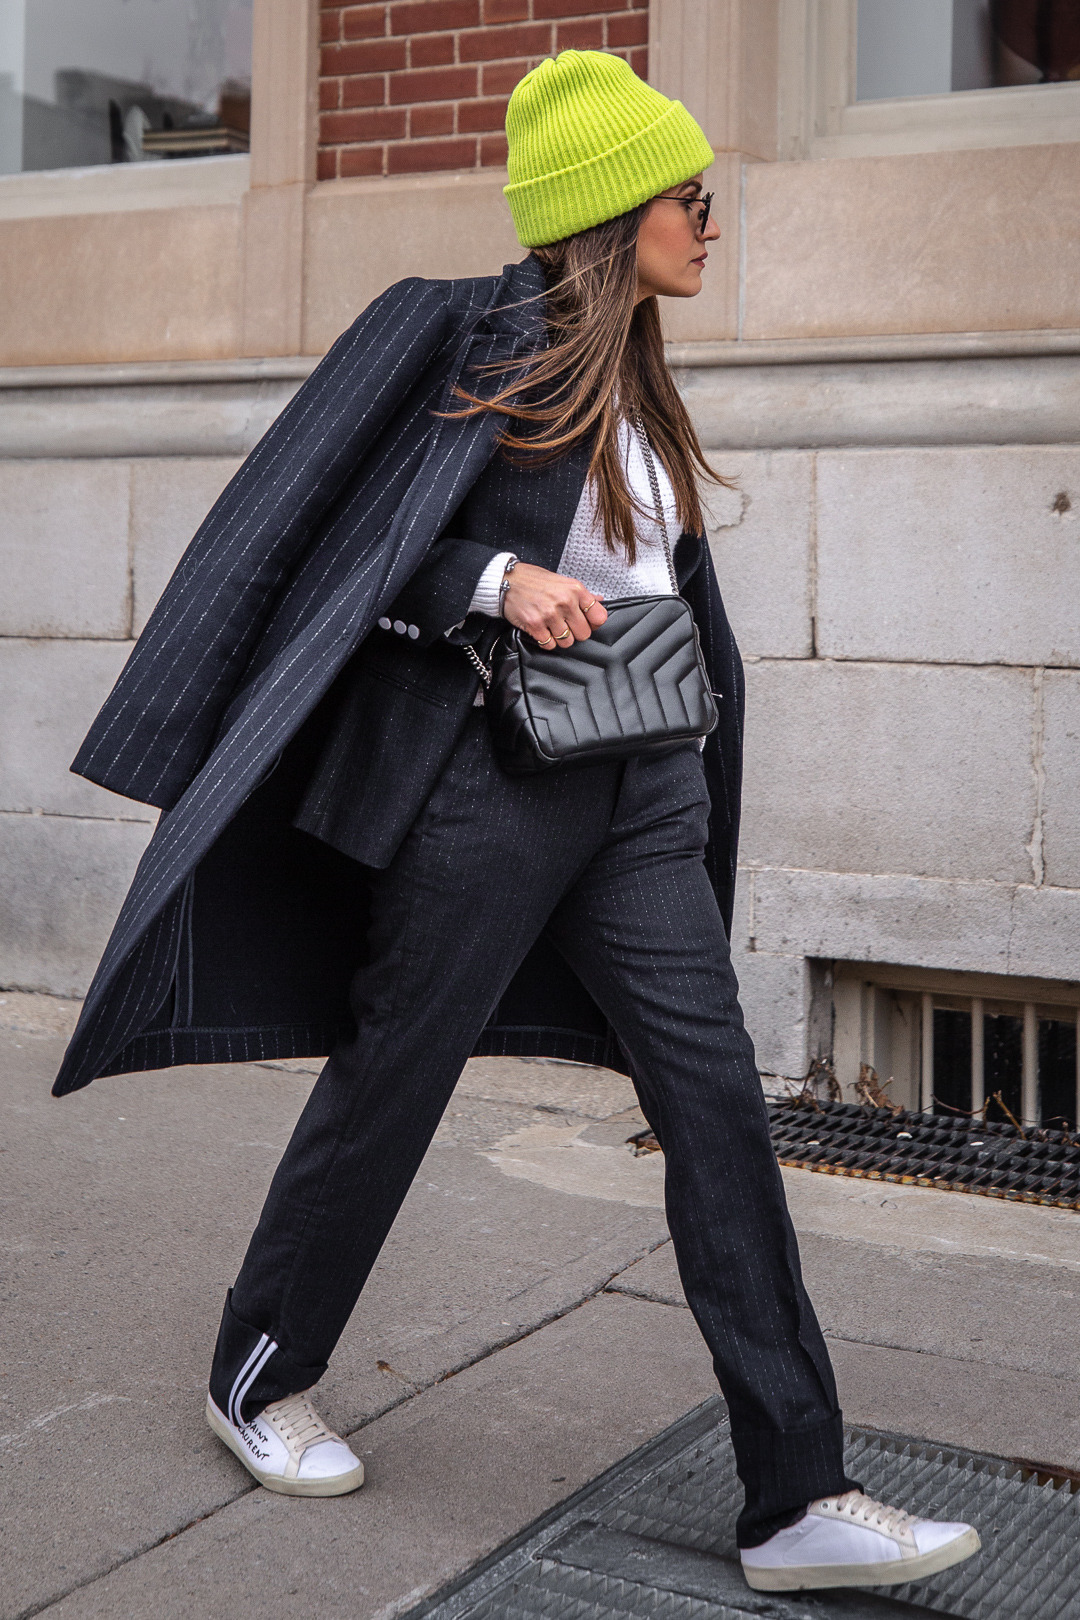 Nathalie Martin - Zadig & Voltaire pinstripe suit, Acne Studios white knitted sweater, Neon green beanie, Saint Laurent LouLou bowling bag and white canvas sneakers, Aritzia Stedman coat, street style, woahstyle.com_5880.jpg